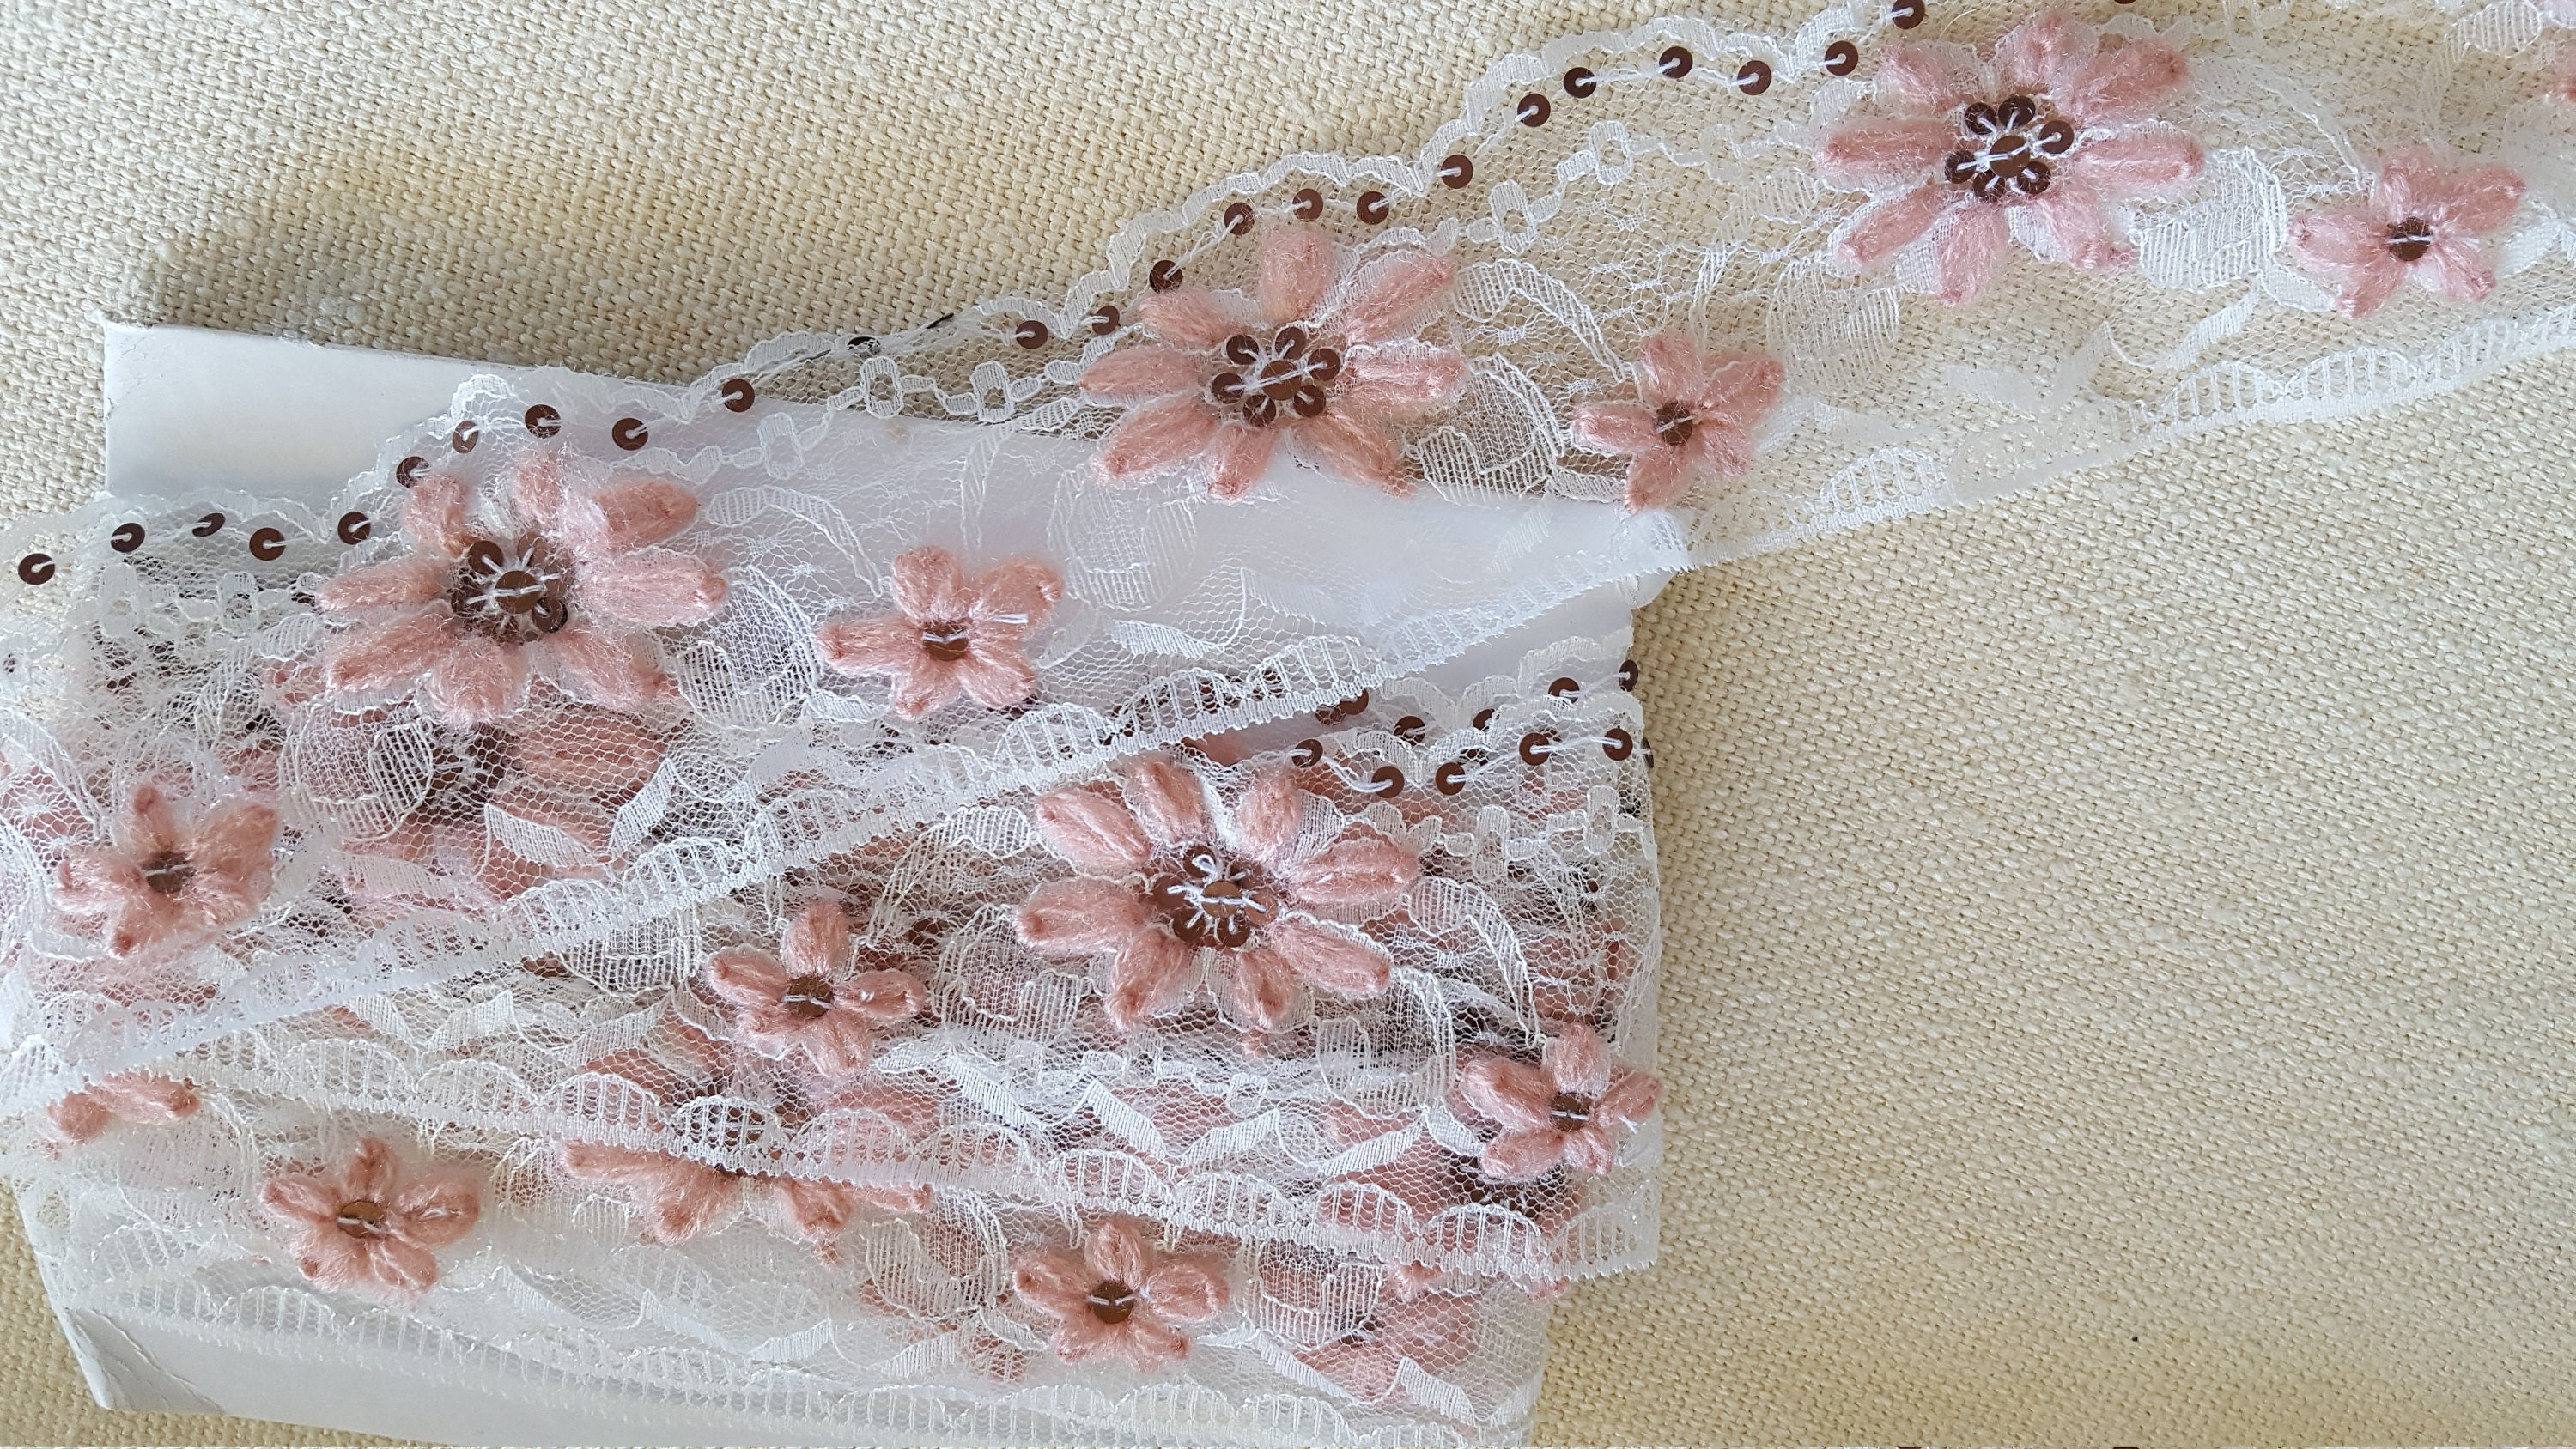 1 Meter White Synthetic Lace Decorated With Flowers Embroidered In